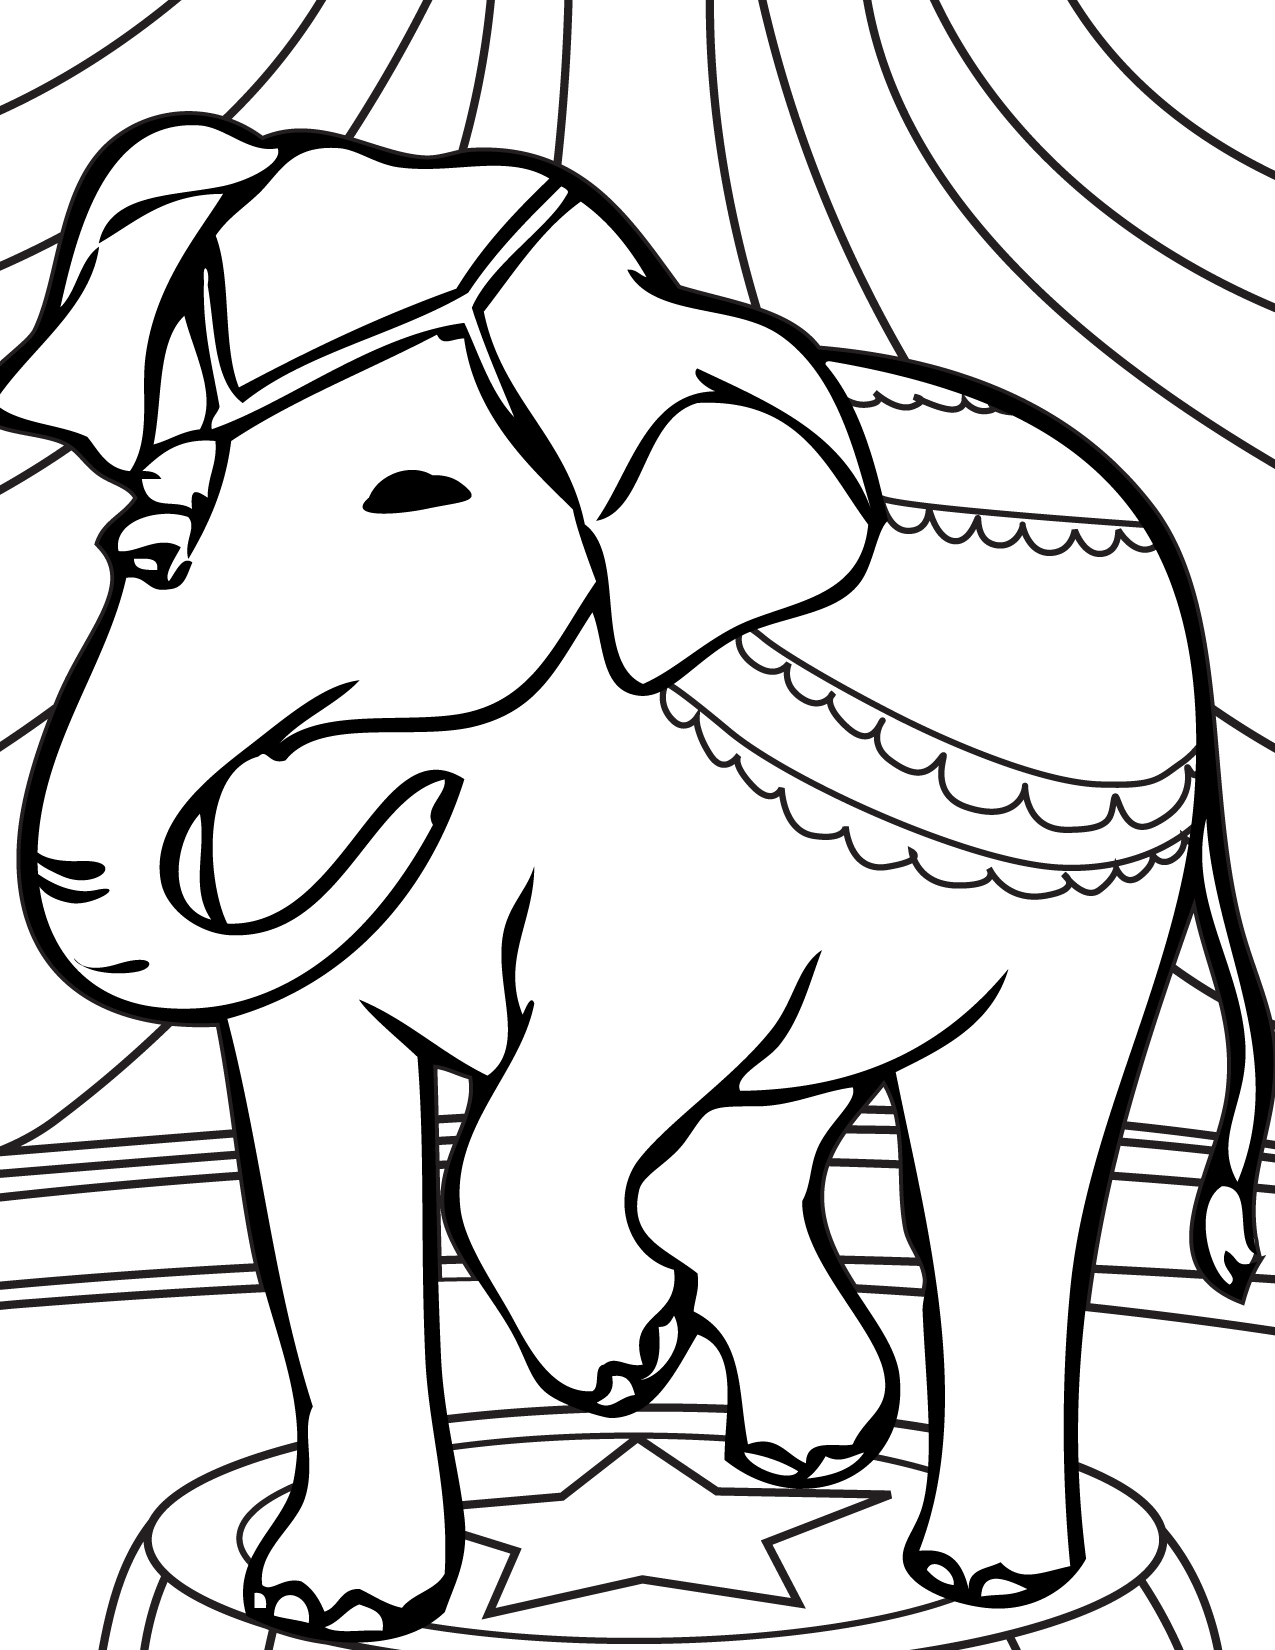 Circus elephant coloring pages only coloring pages Coloring book elephant